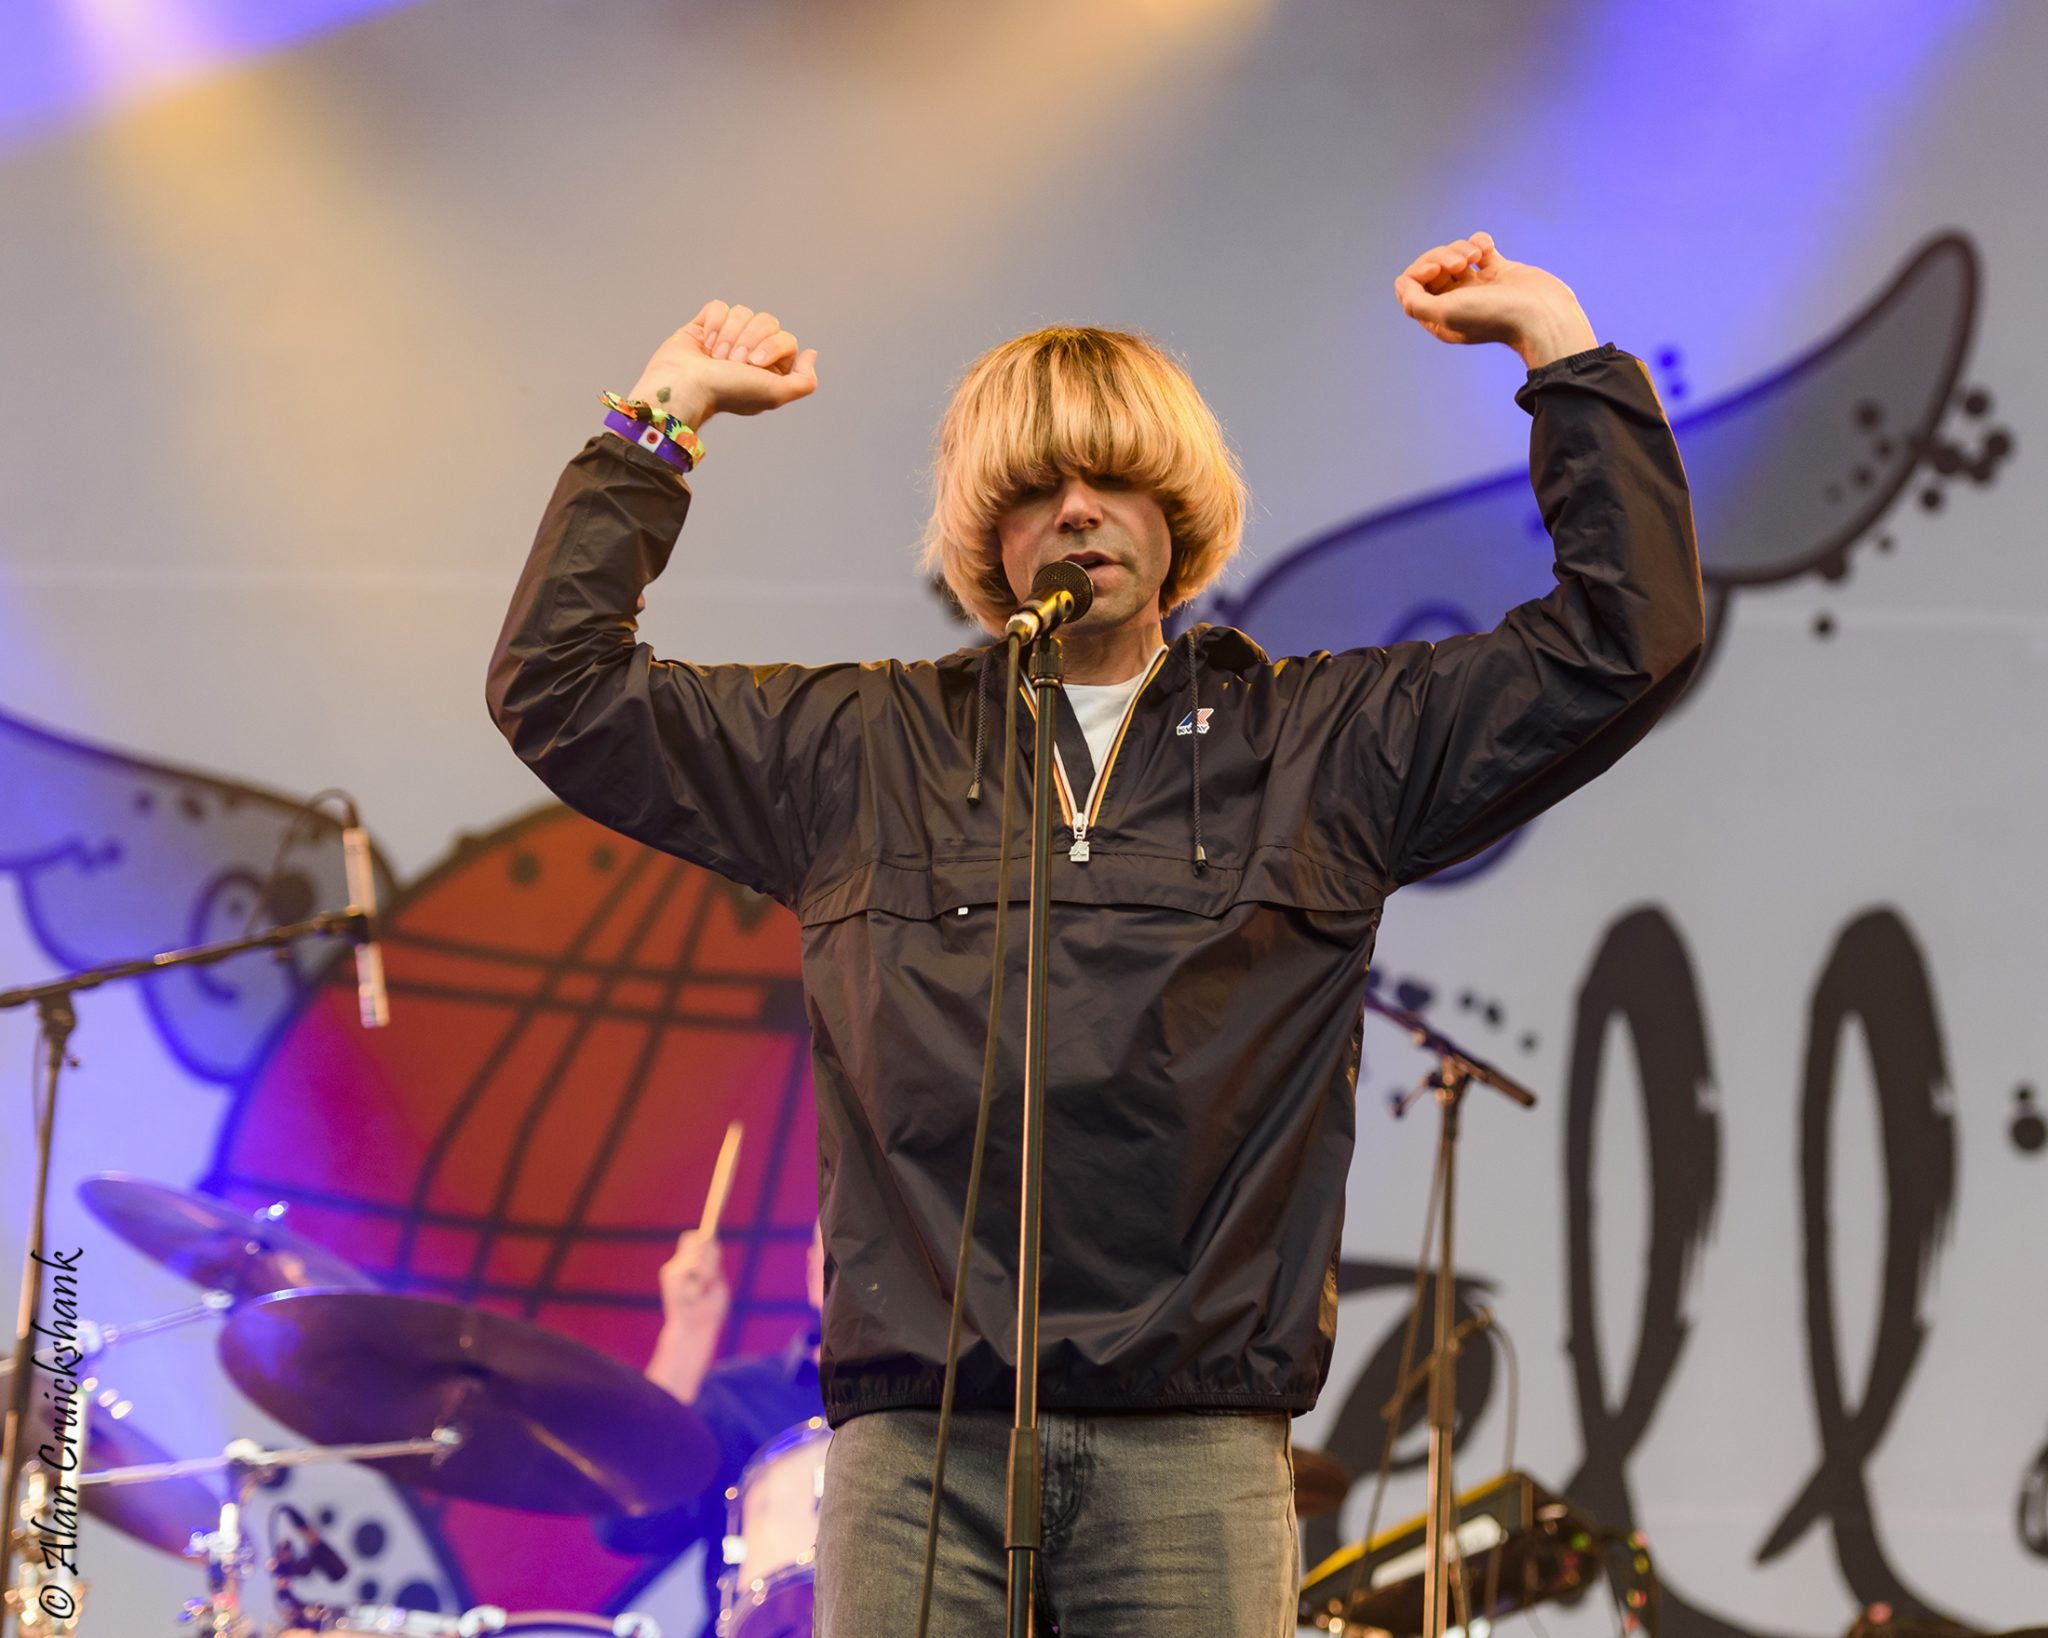 3lLbH - The Charlatans, Friday Belladrum 2018 - IMAGES